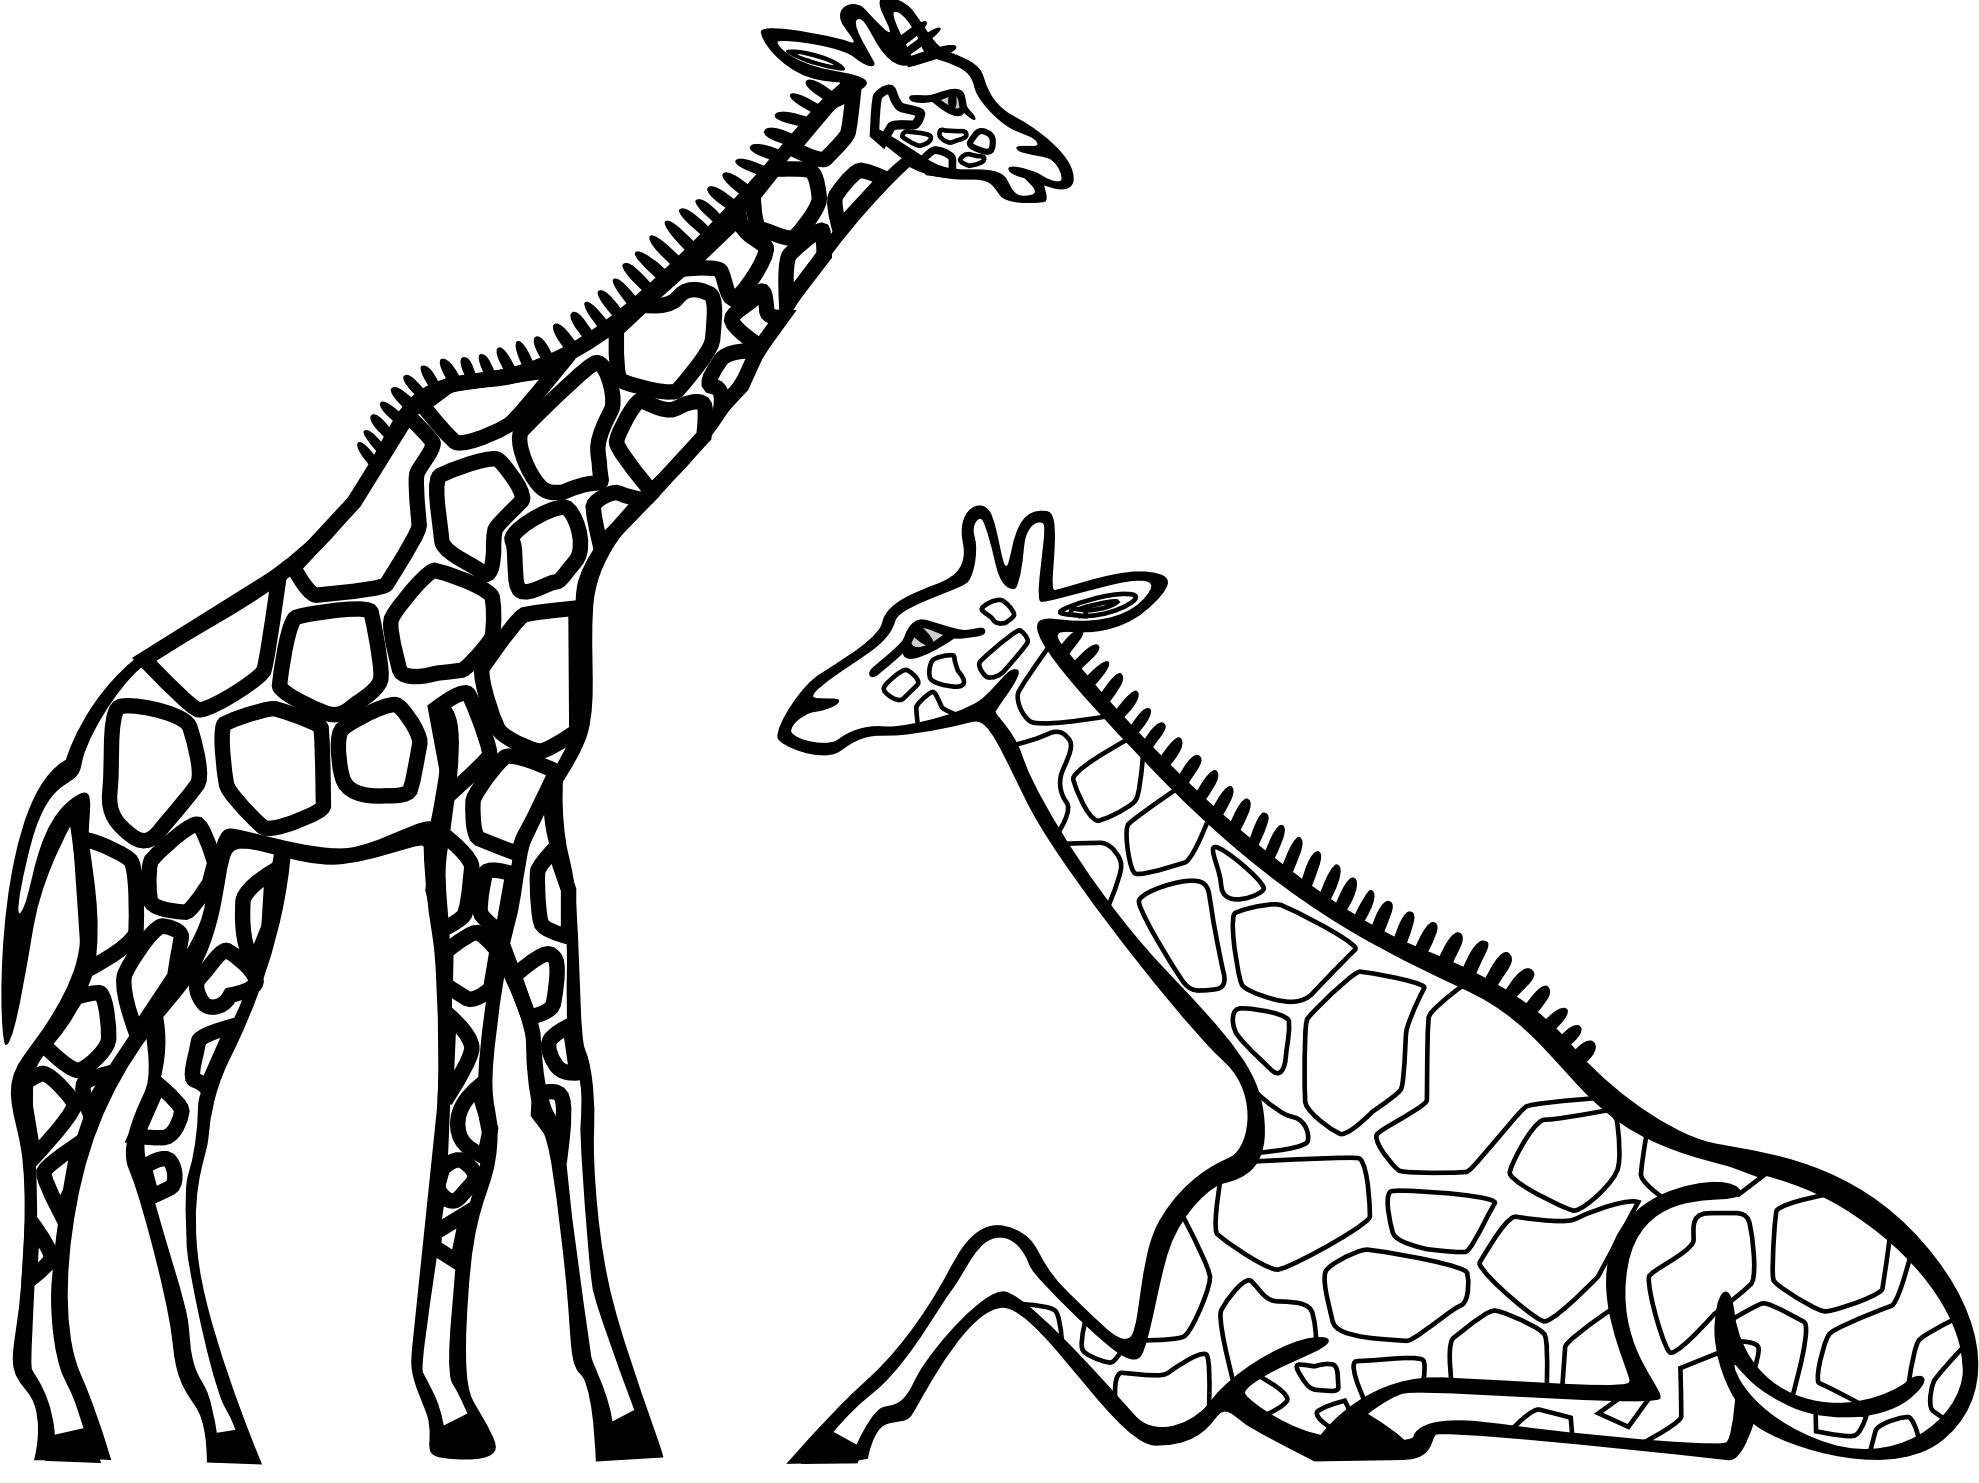 Giraffe clipart terrestrial animal. Zebra black and white